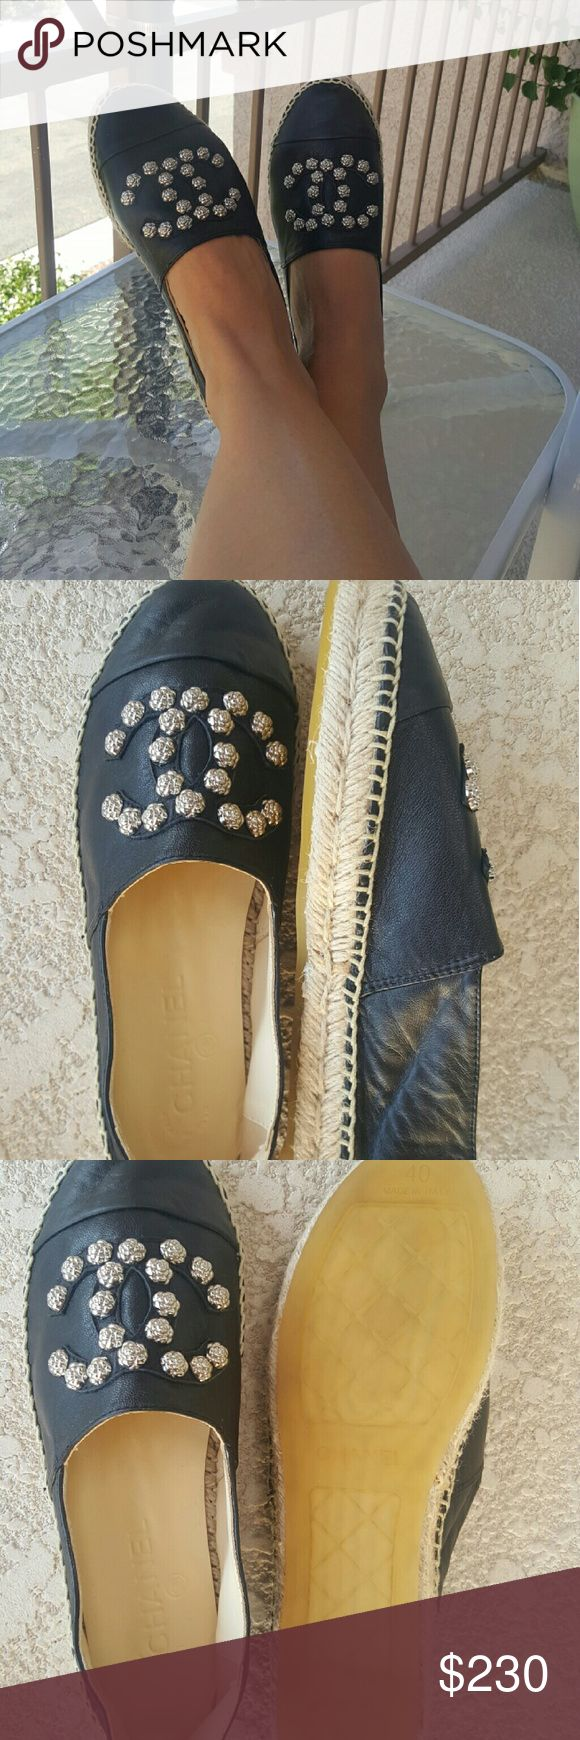 Chanel Black Leather Silver Studded Espadrilles Like new Chanel Black Lambskin Silver Studded Espadrilles Flats.Very soft and comfortable. Size 40 but run smaller. Best suitable for US 8.5  Purchased online and not sure of authenticity. No box CHANEL Shoes Espadrilles